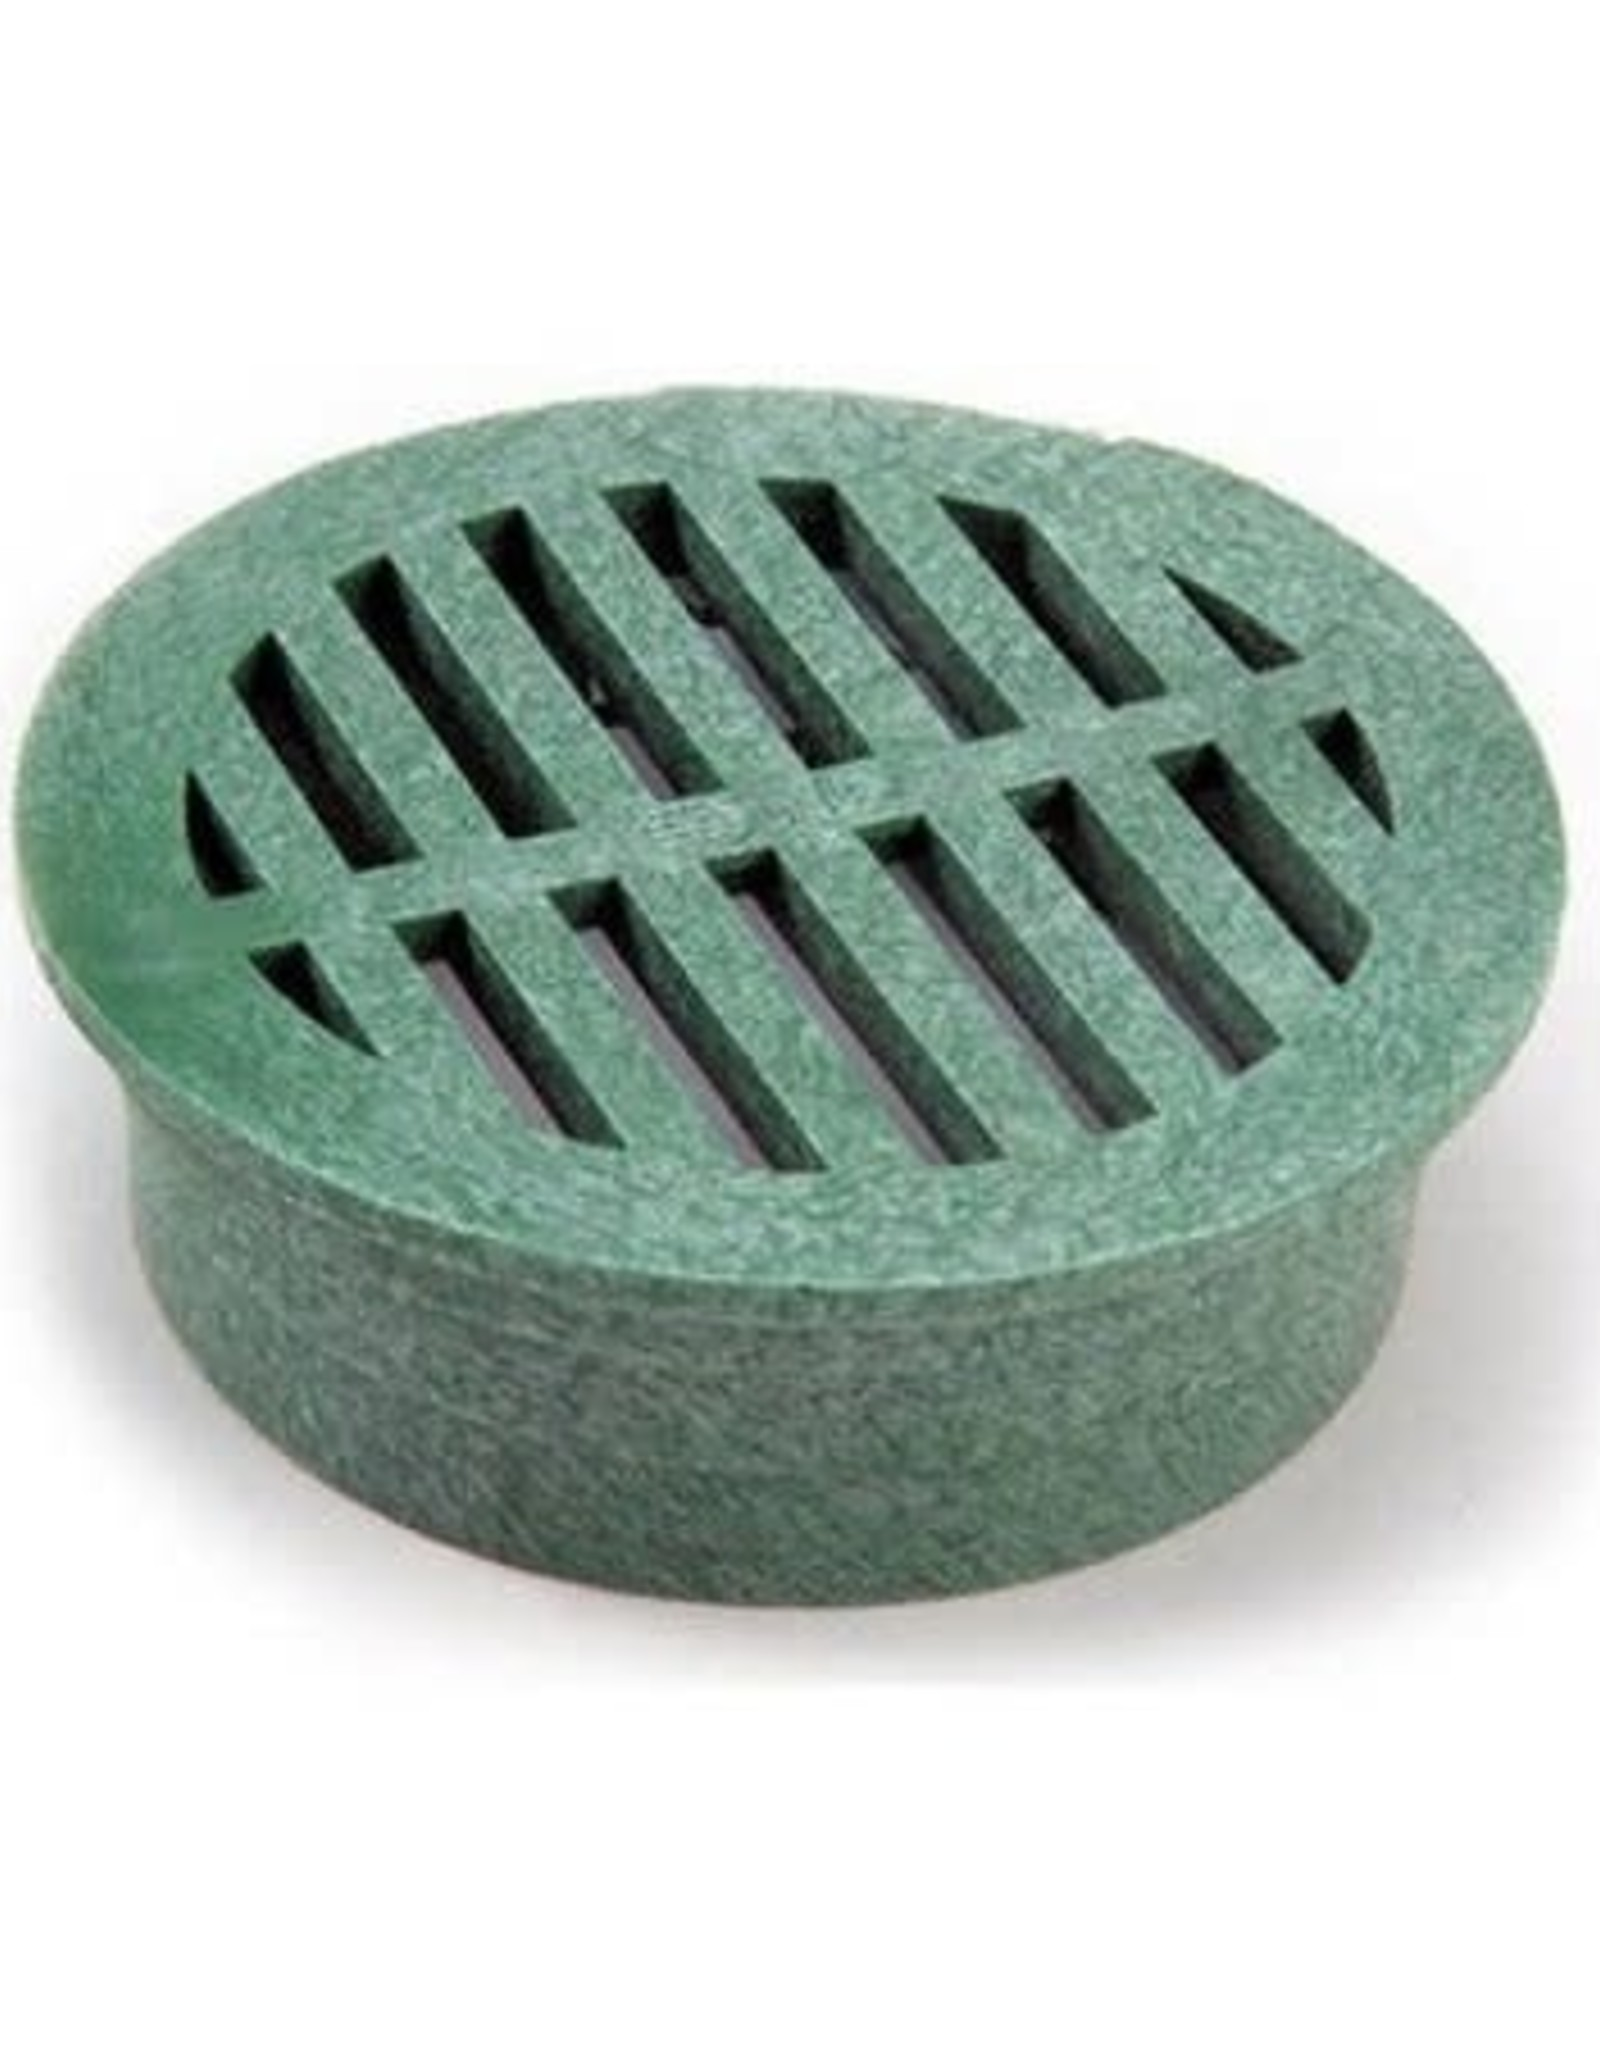 NDS Drainage NDS Drain Grate Round Polyolefin Green 3 in.